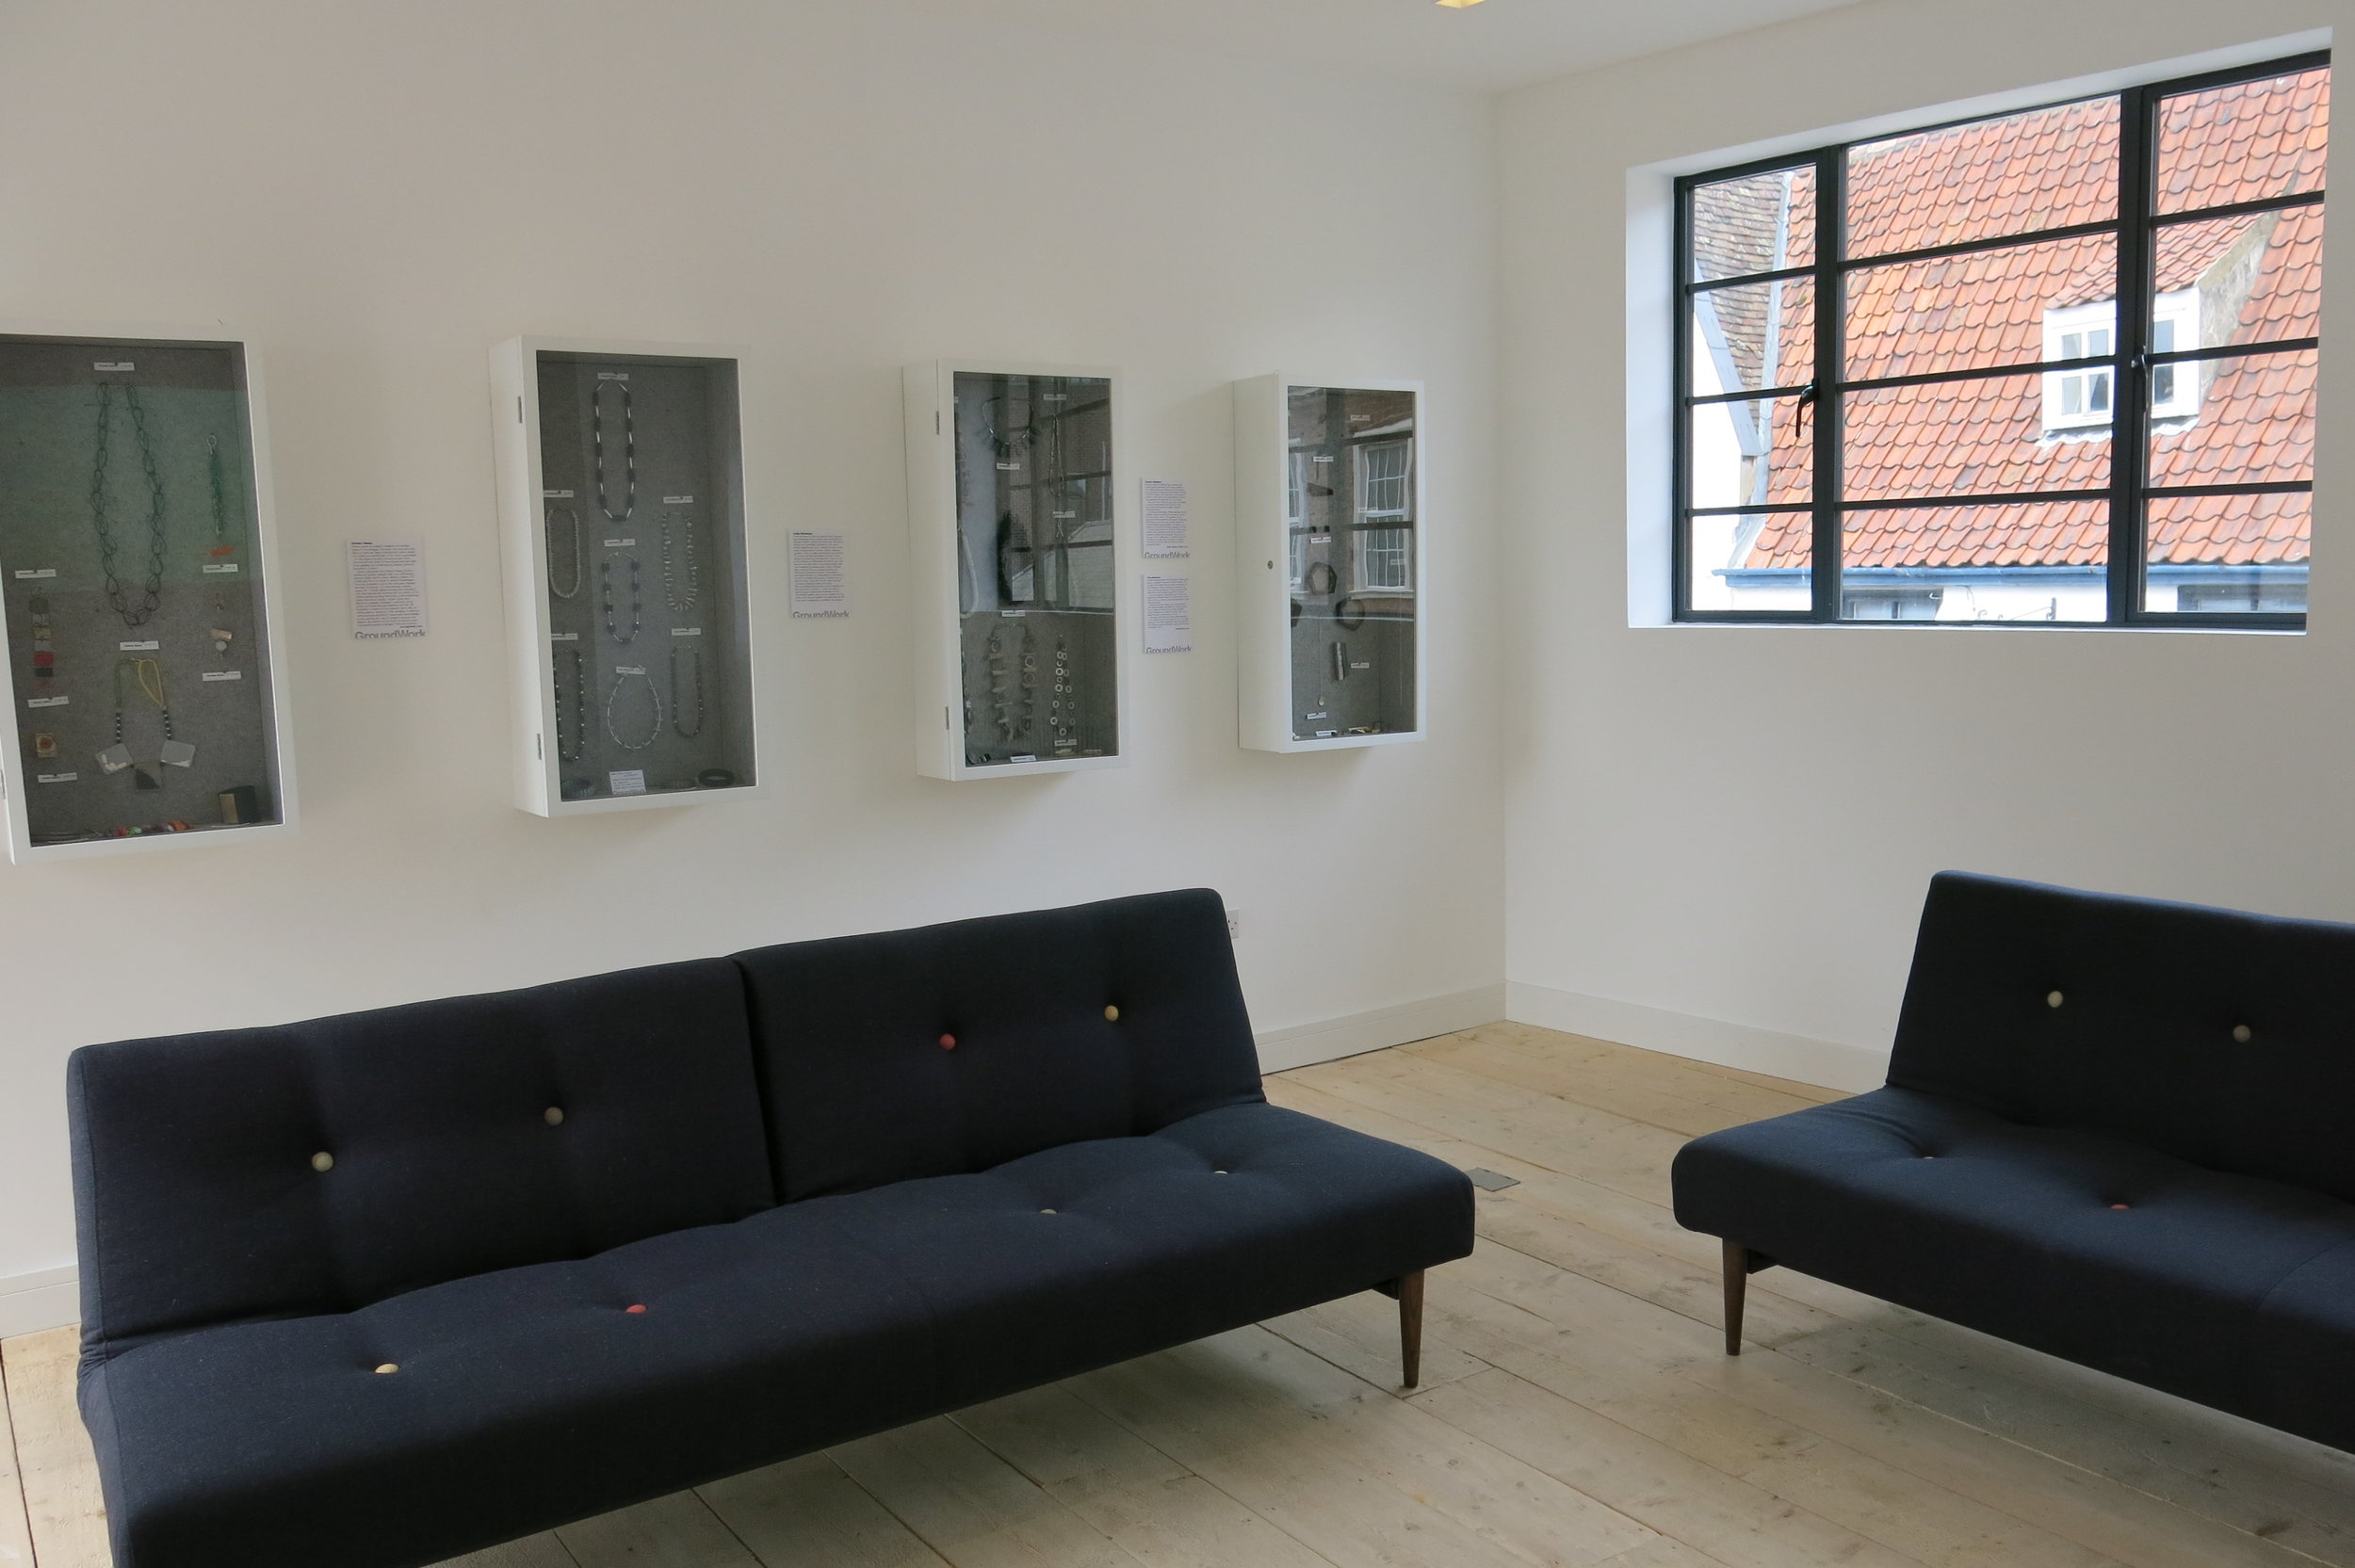 First Floor Living Room, GroundWork Gallery